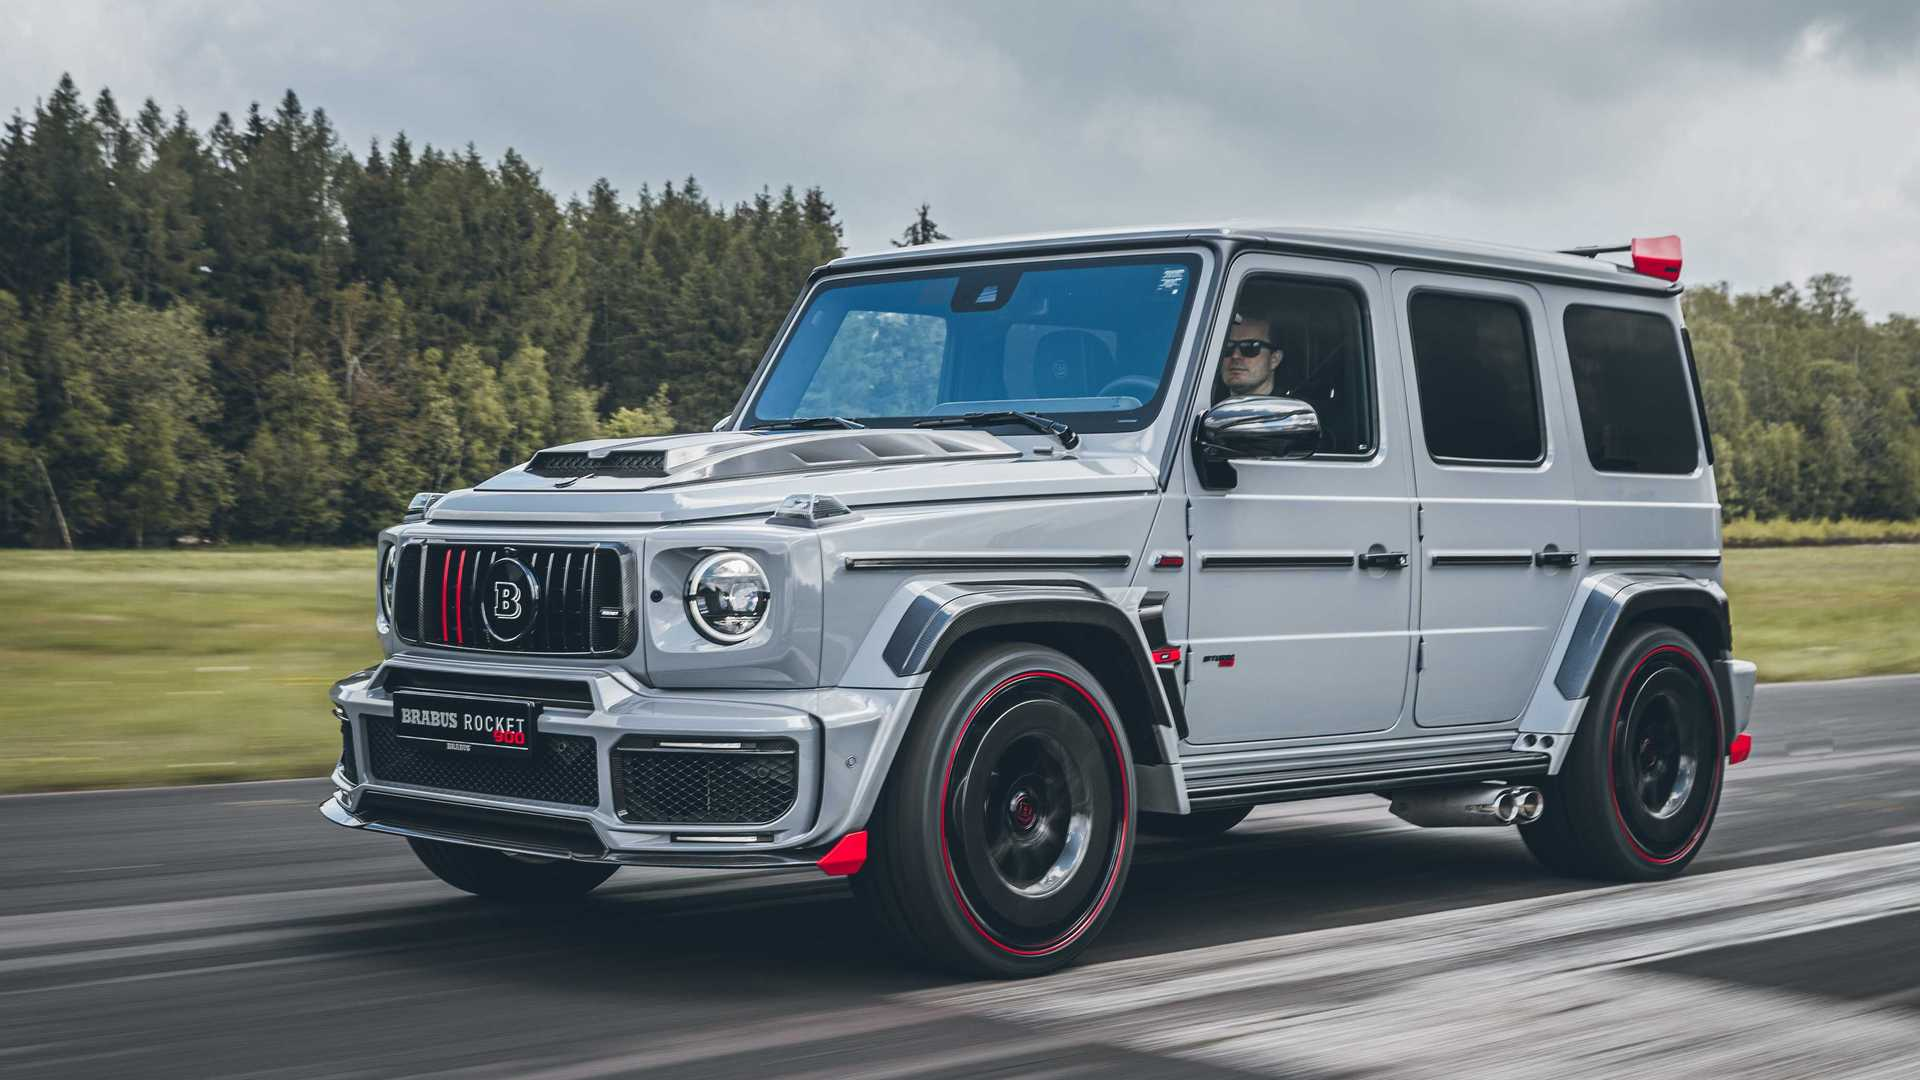 Brabus has unleashed its latest custom edition of the Mercedes-AMG G63 S, landing it with an extreme performance boost and a body kit to match.